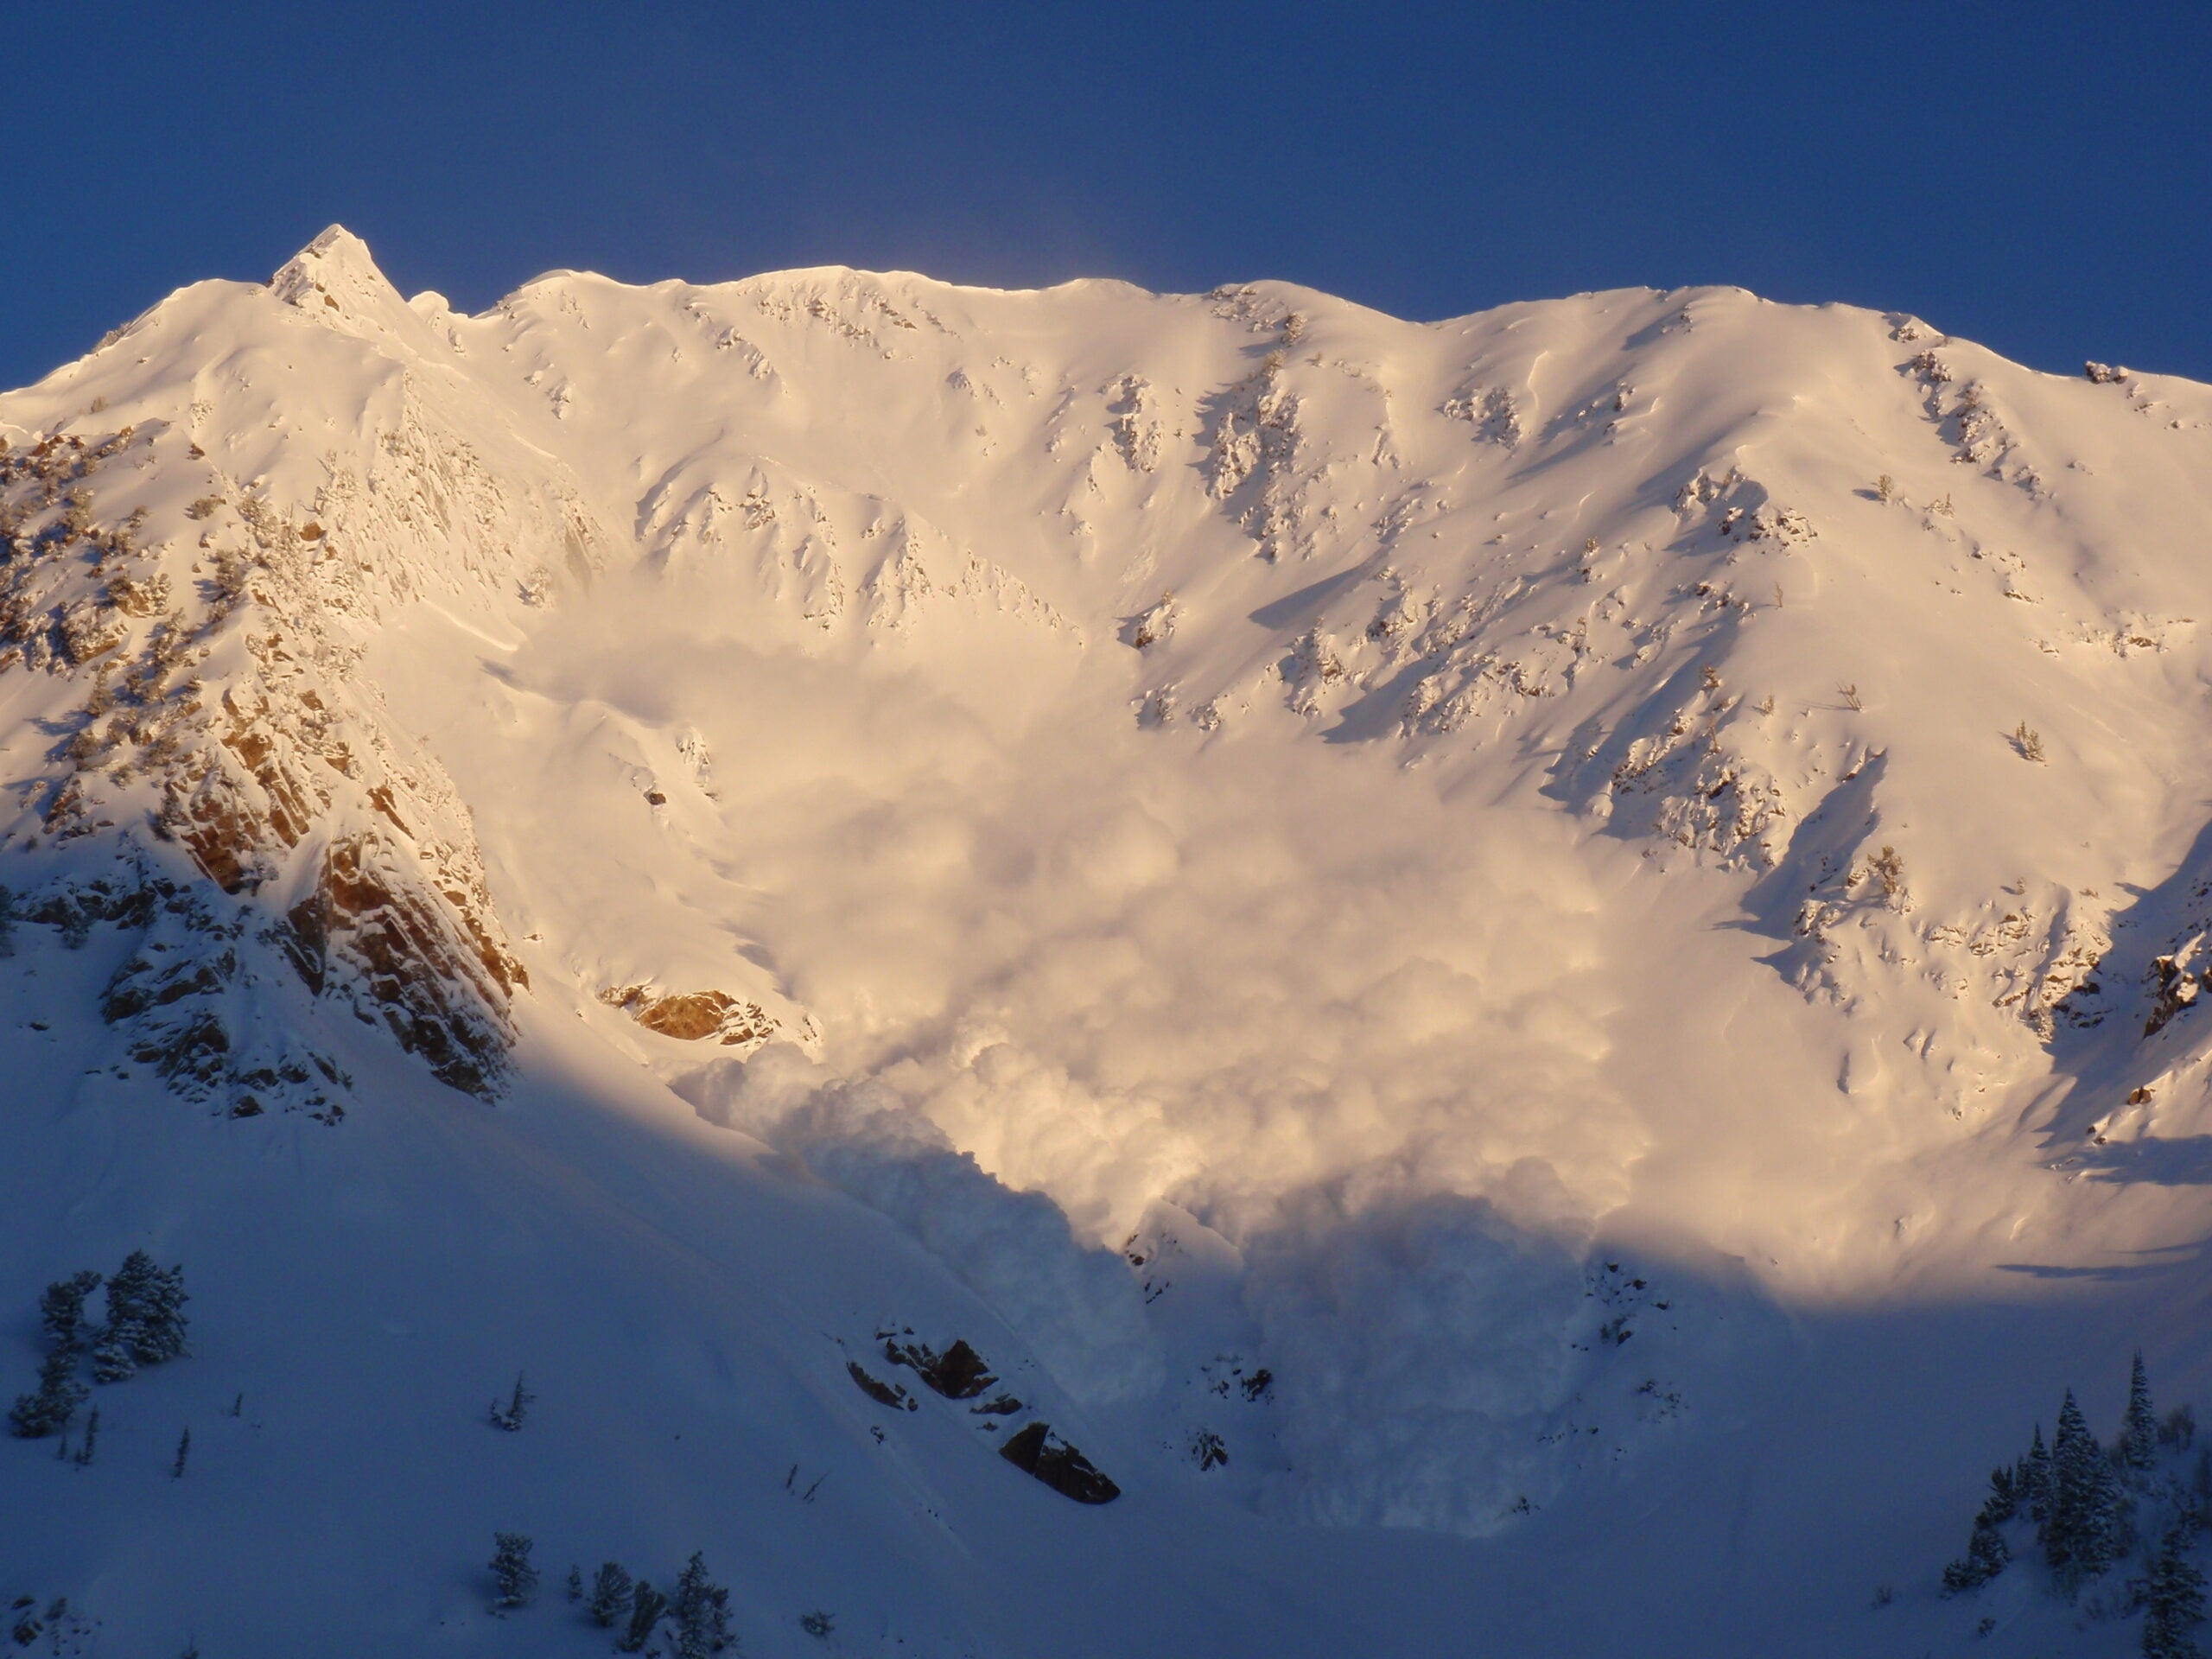 What to do if you get caught in an avalanche